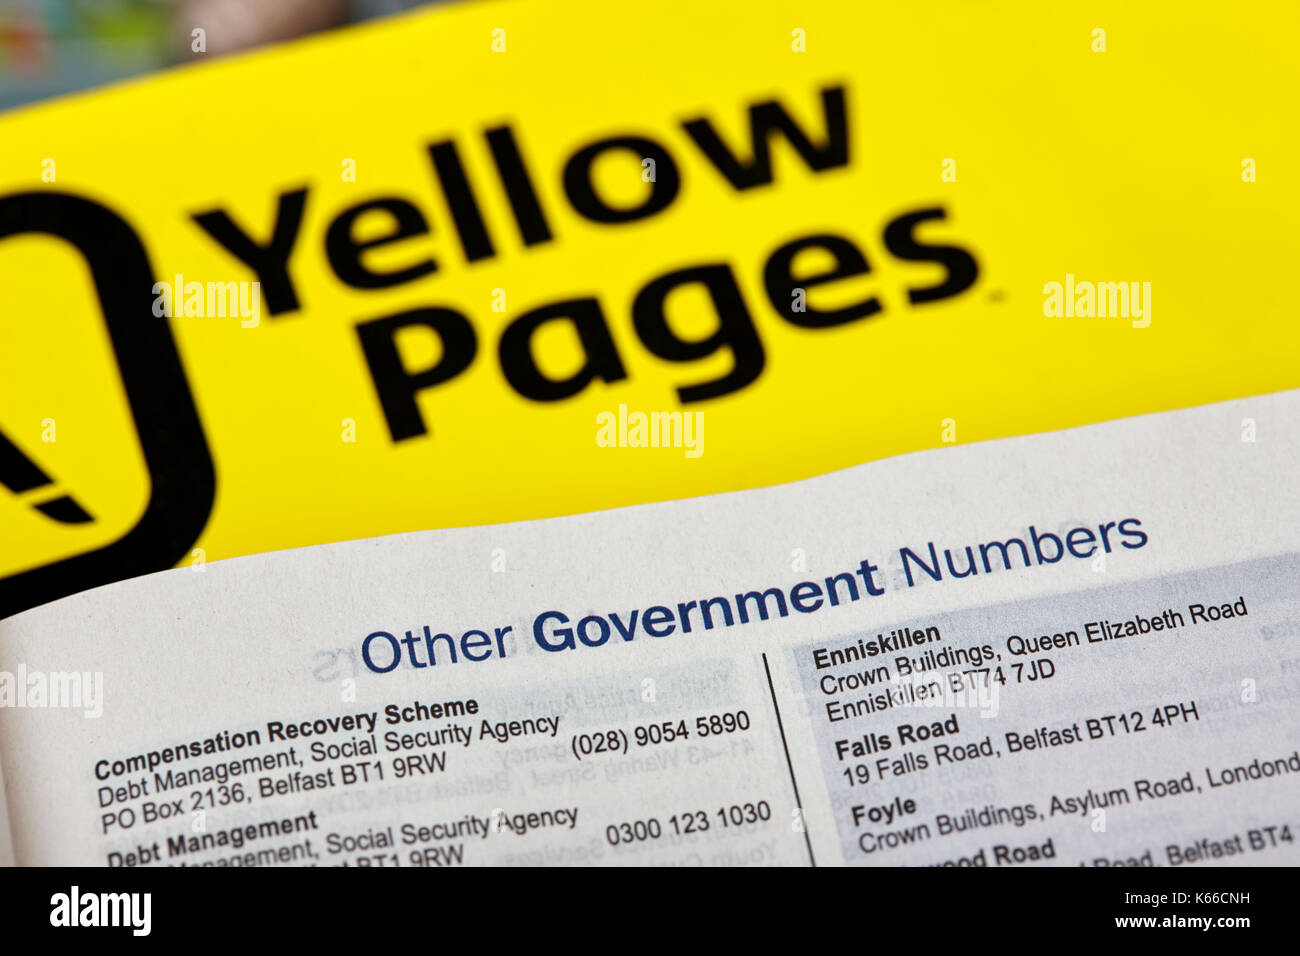 local government services numbers in yellow pages classified telephone directory paper edition uk - Stock Image